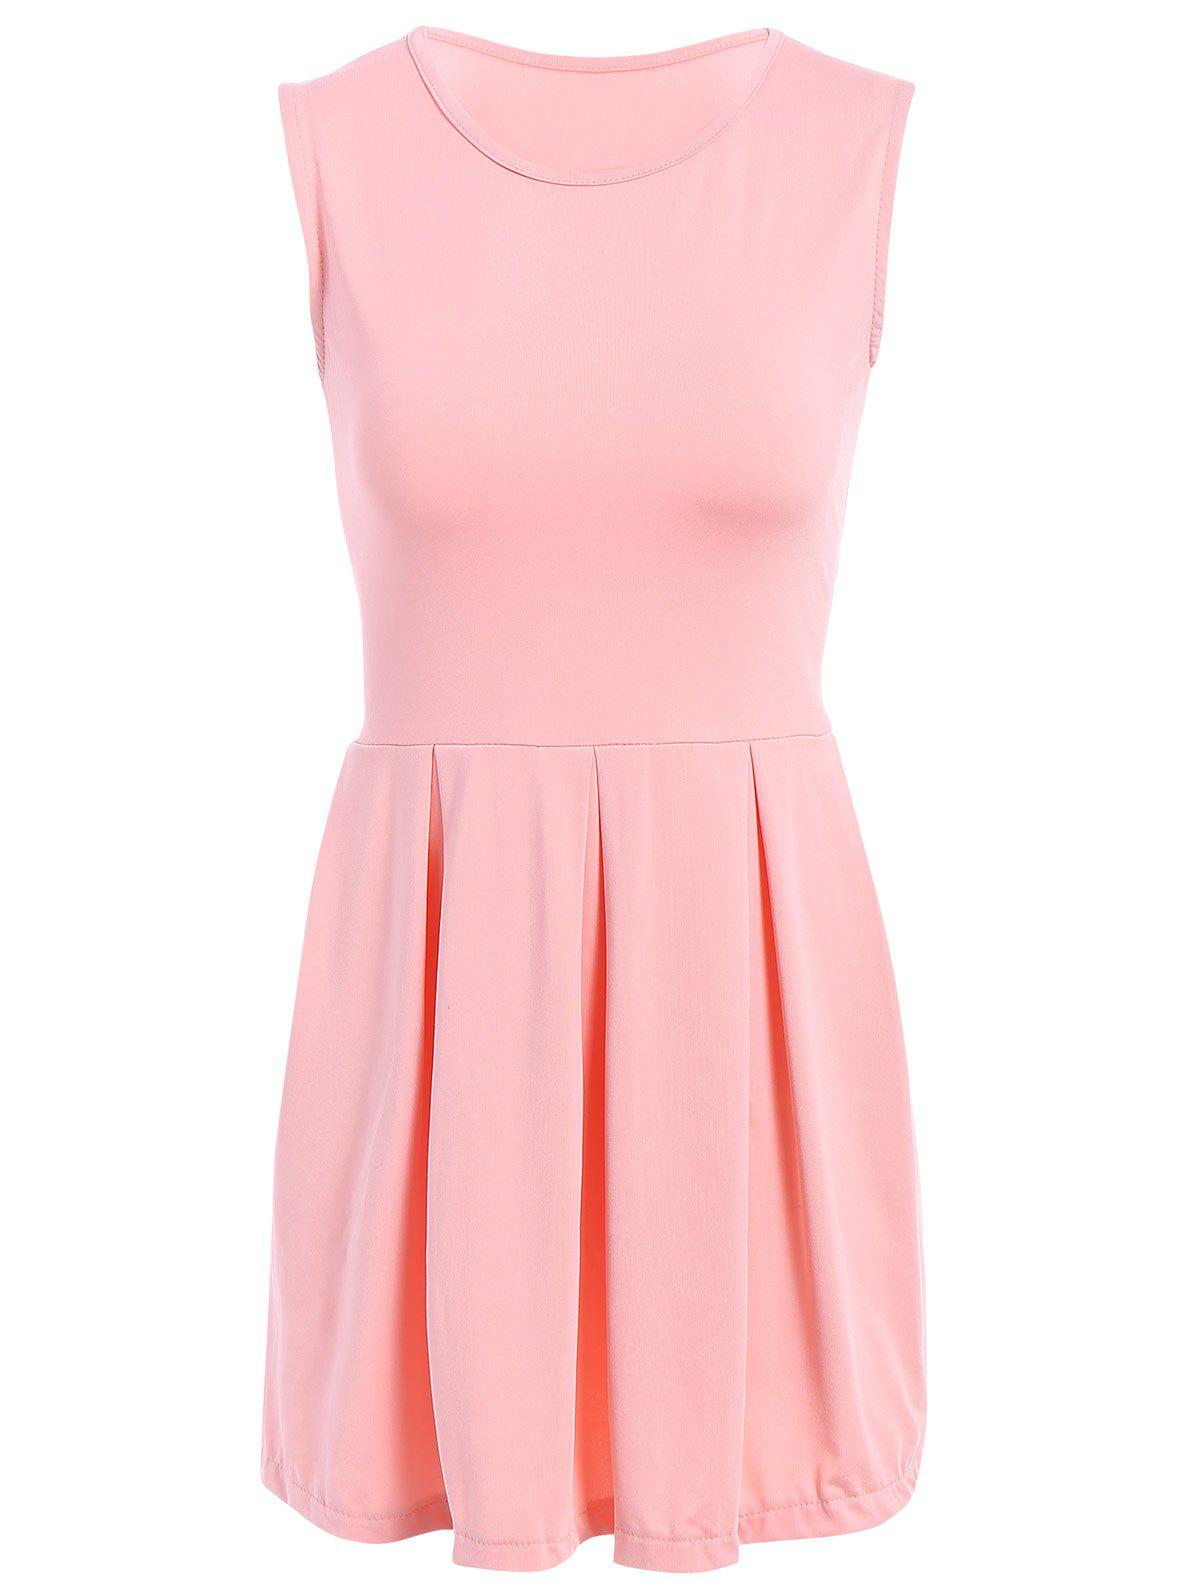 Sweet Solid Color Sleeveless Pleated Mini Dress For Women - PINK M